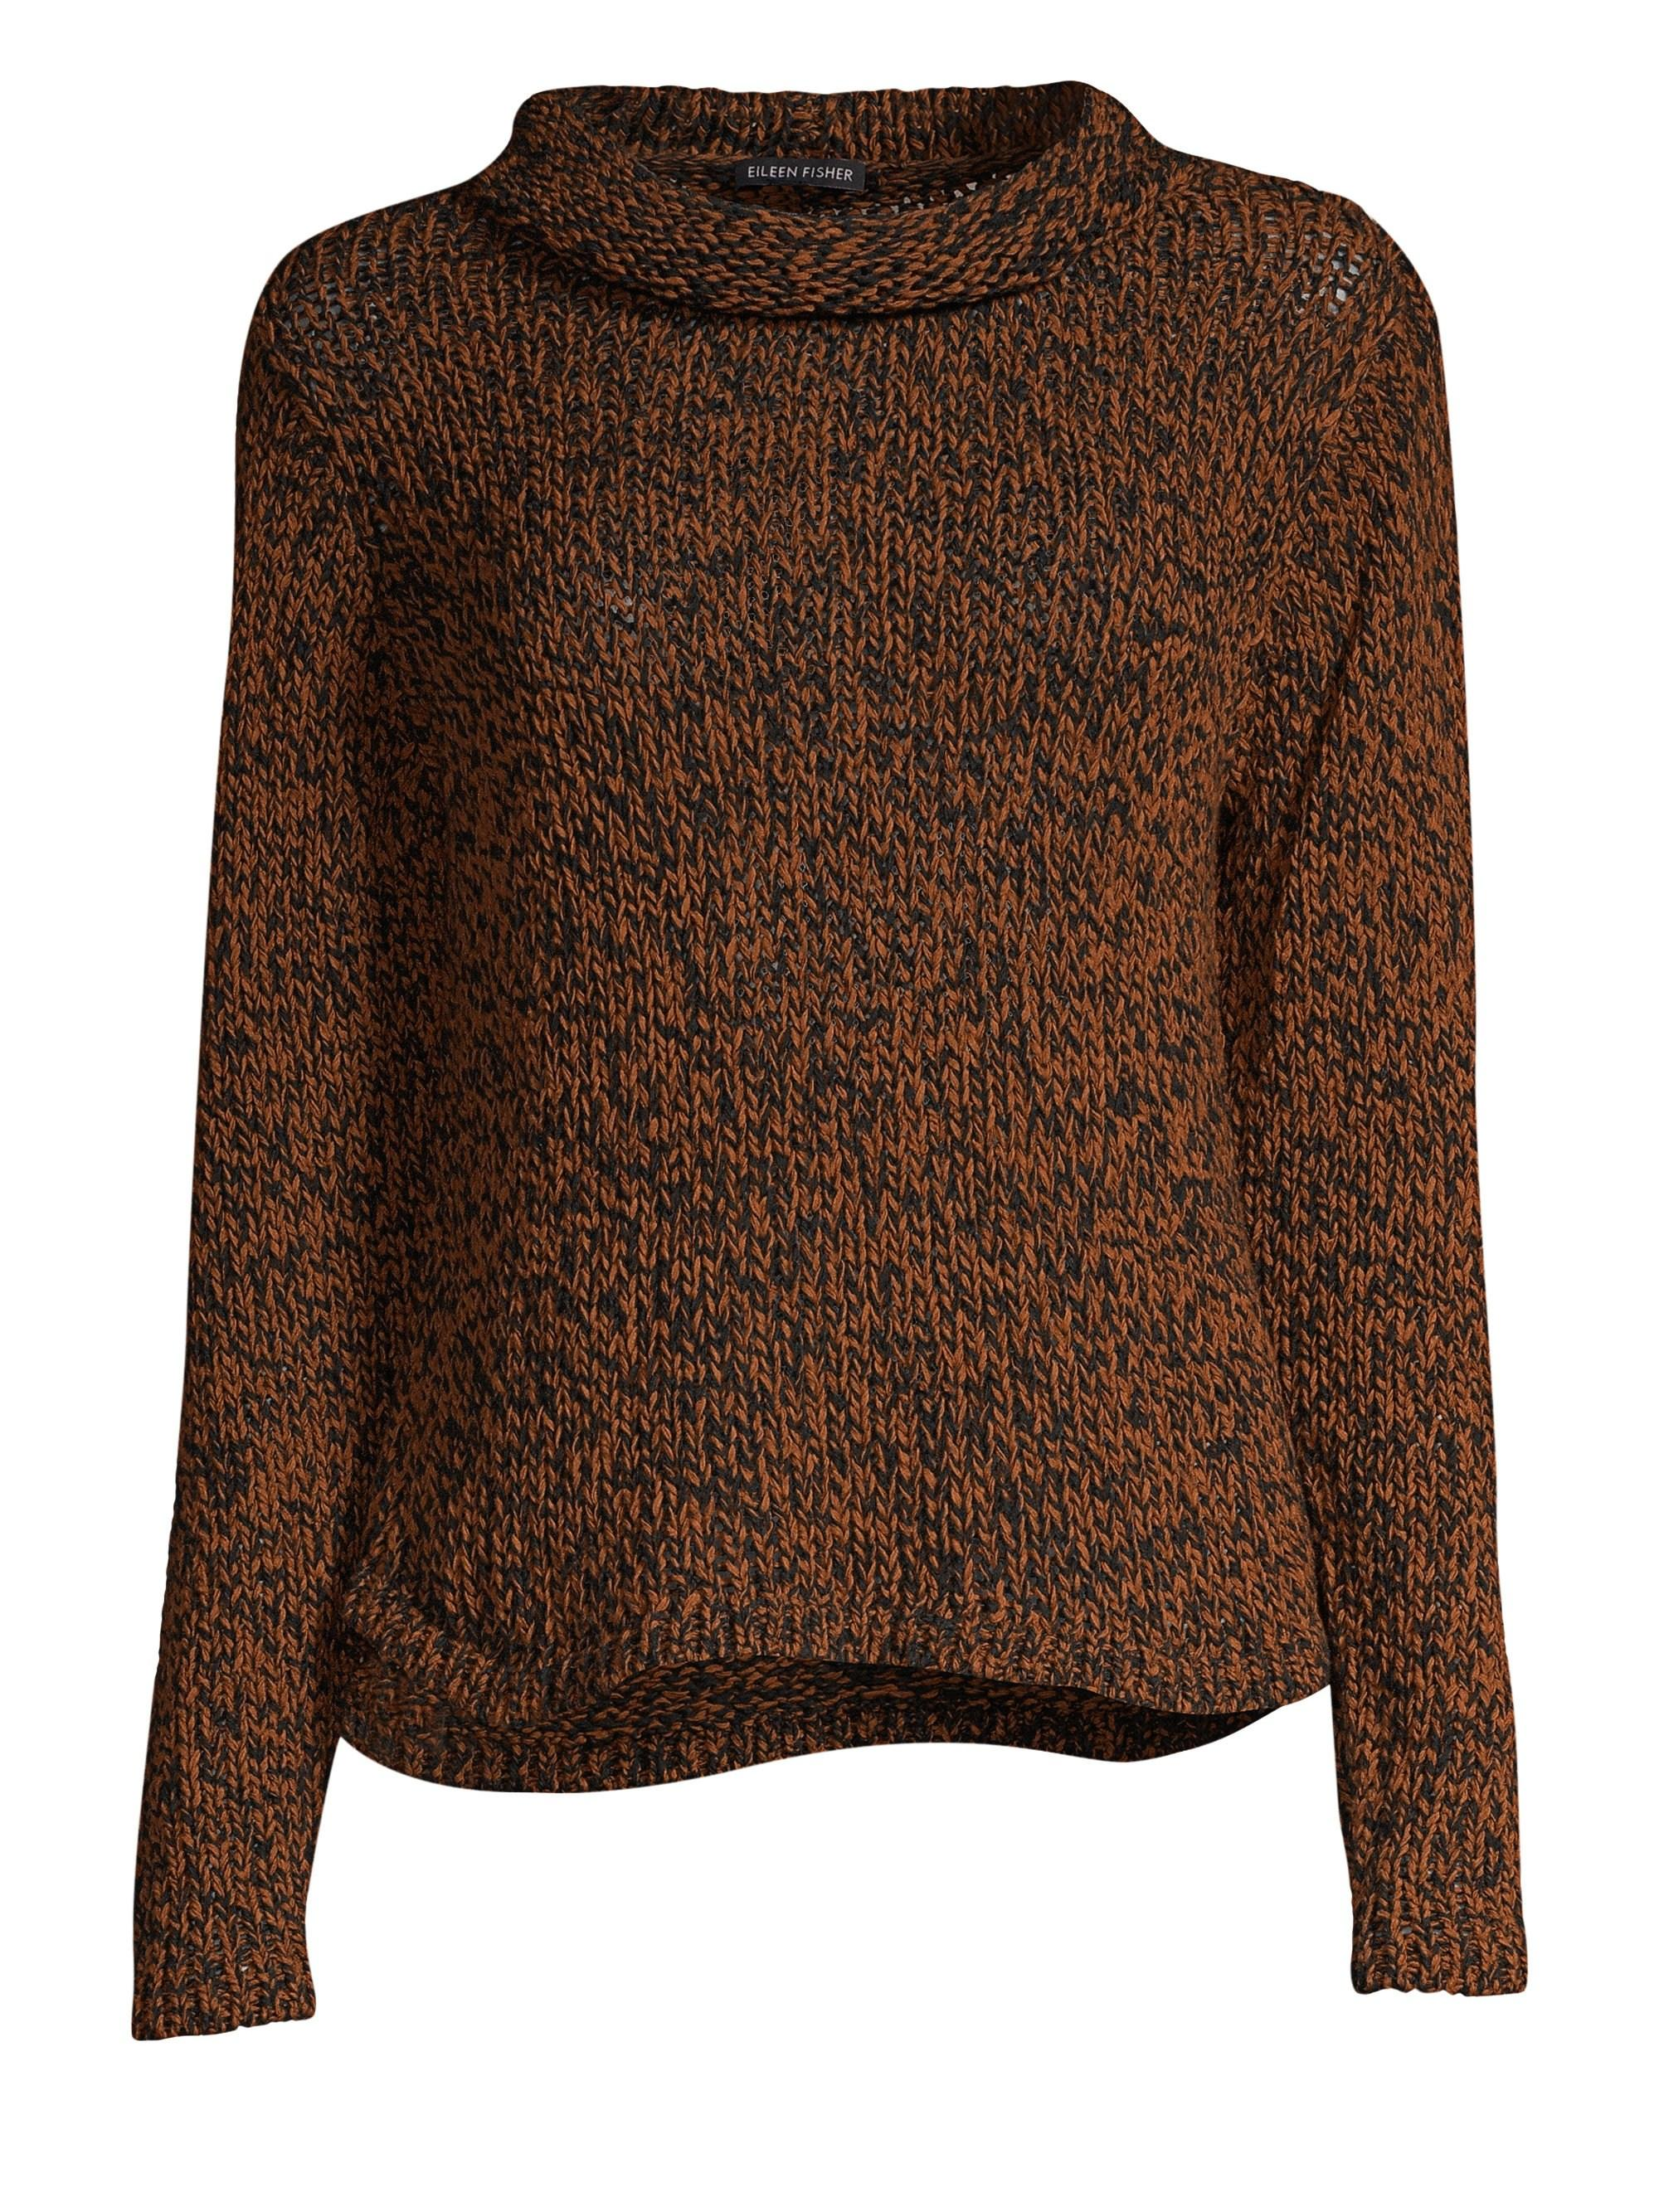 0fa5ef9a935895 Eileen Fisher - Brown Rolled Neck Sweater - Lyst. View fullscreen